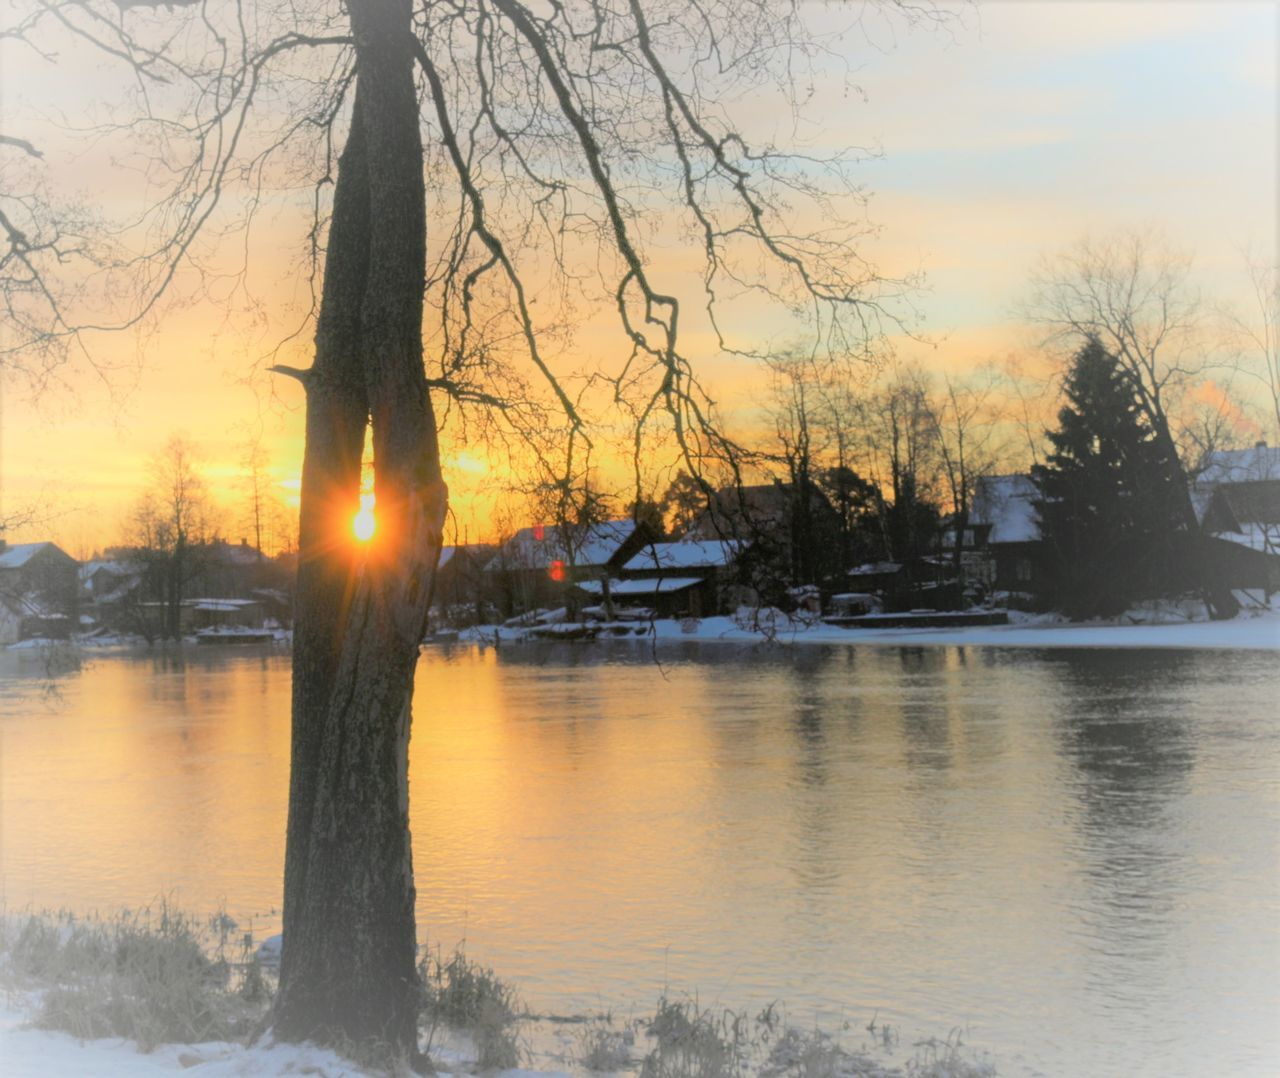 sunset, tree, beauty in nature, nature, scenics, tranquil scene, tranquility, no people, water, winter, sky, cold temperature, silhouette, outdoors, lake, bare tree, snow, day